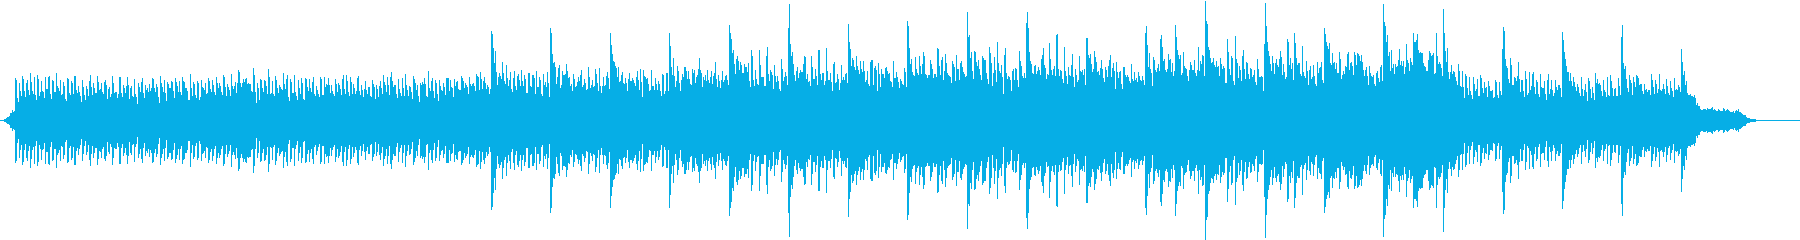 Great for movies's reproduced waveform